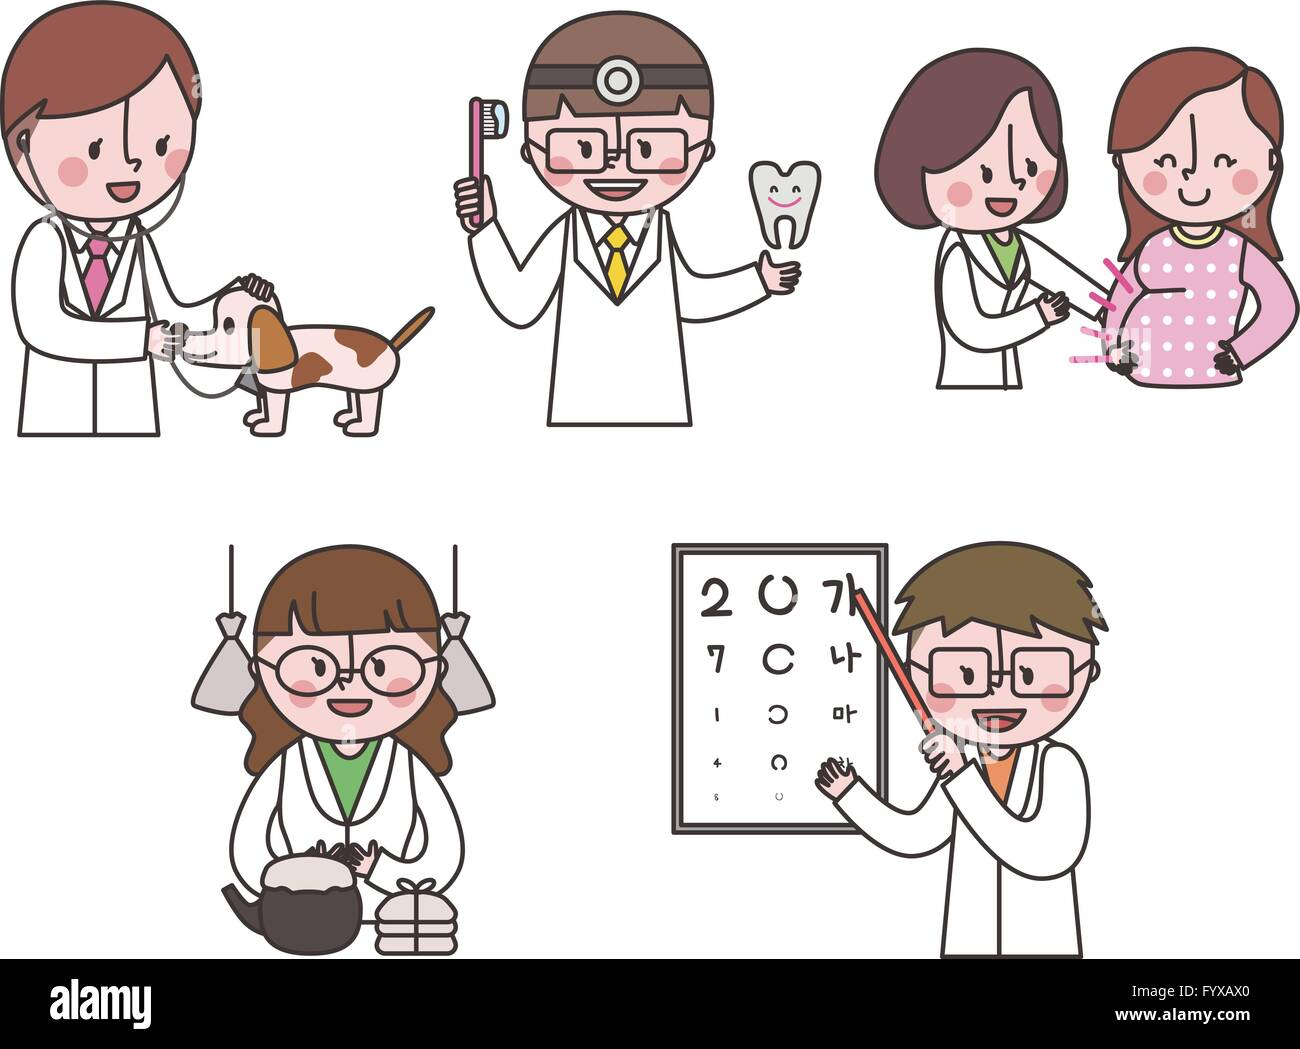 Job emoticons 012 - Stock Image